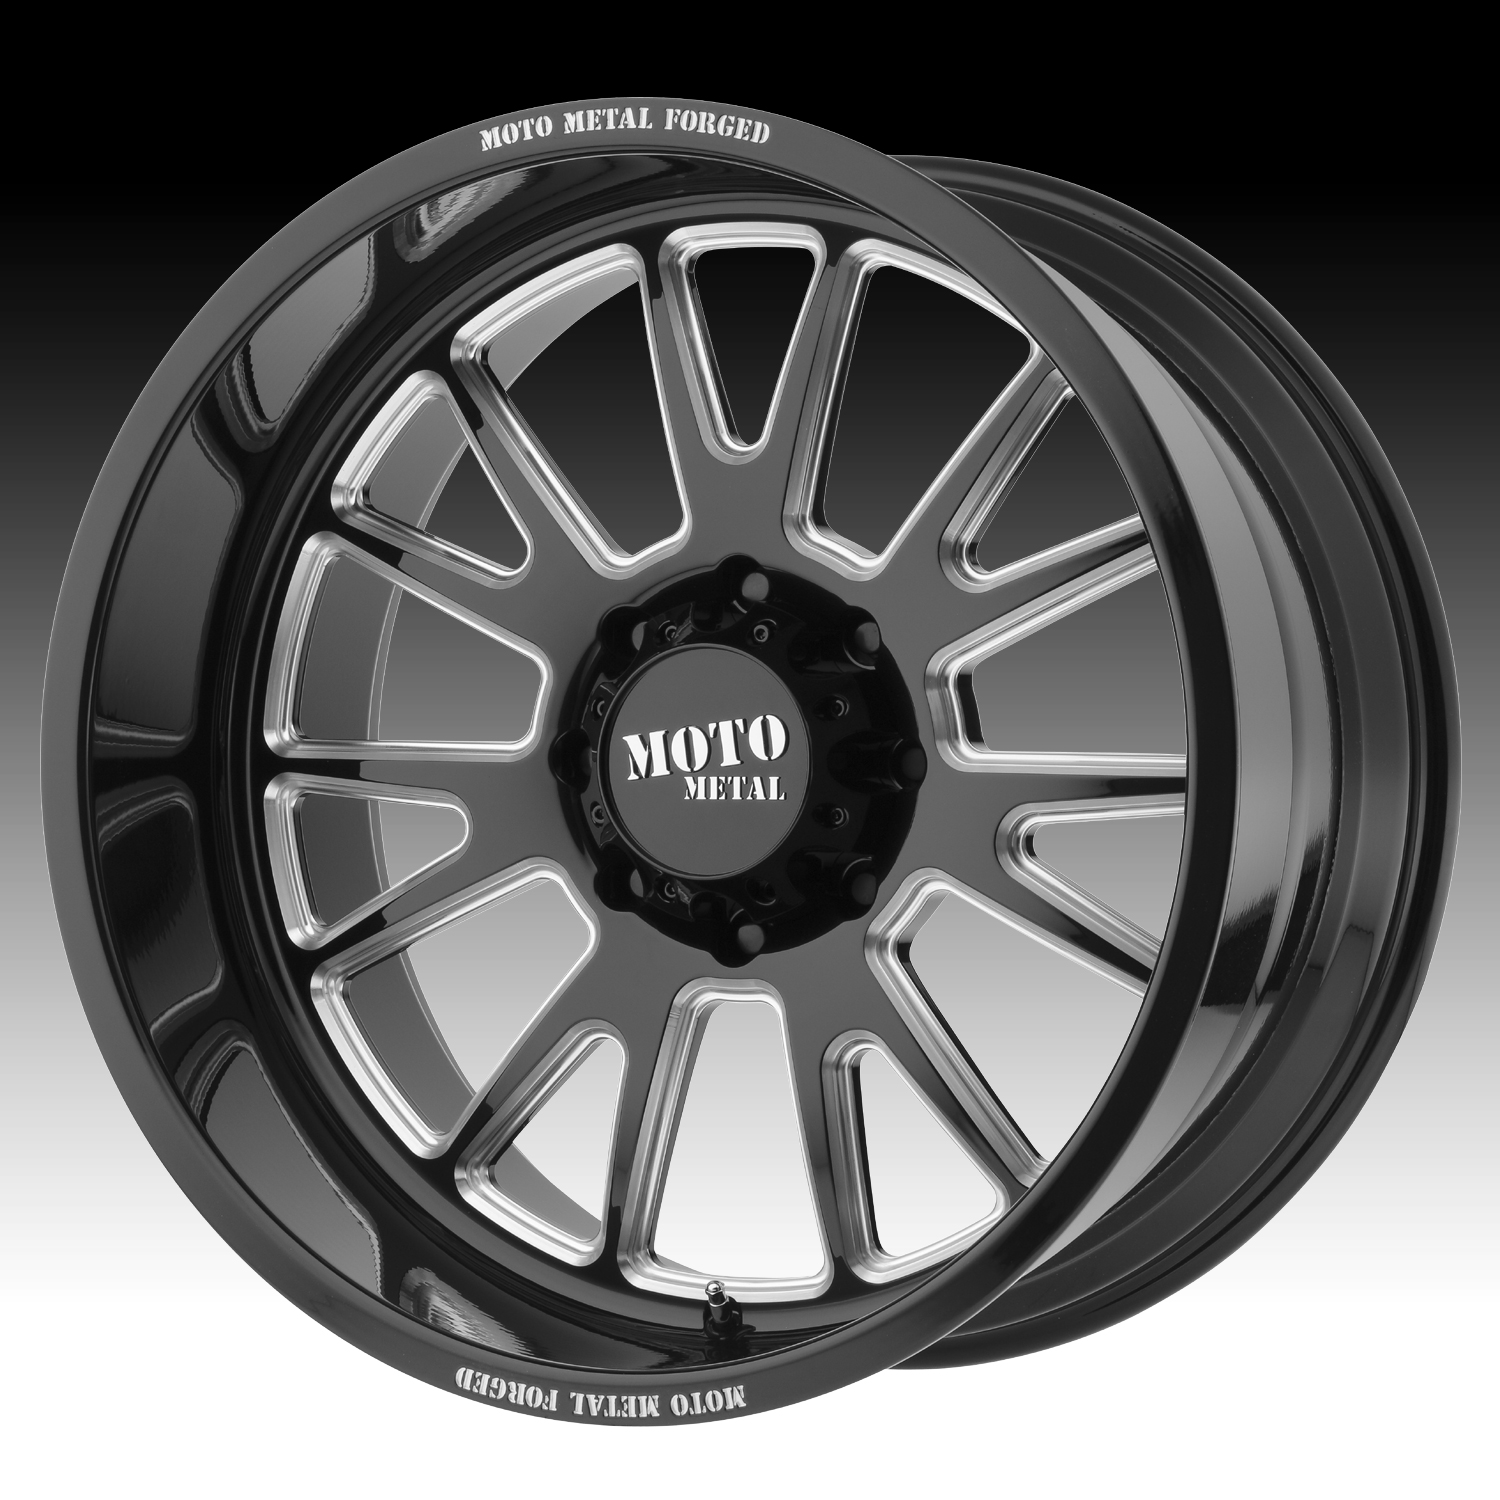 Moto Metal Mo401 Forged Polished Custom Wheels Rims Moto Metal